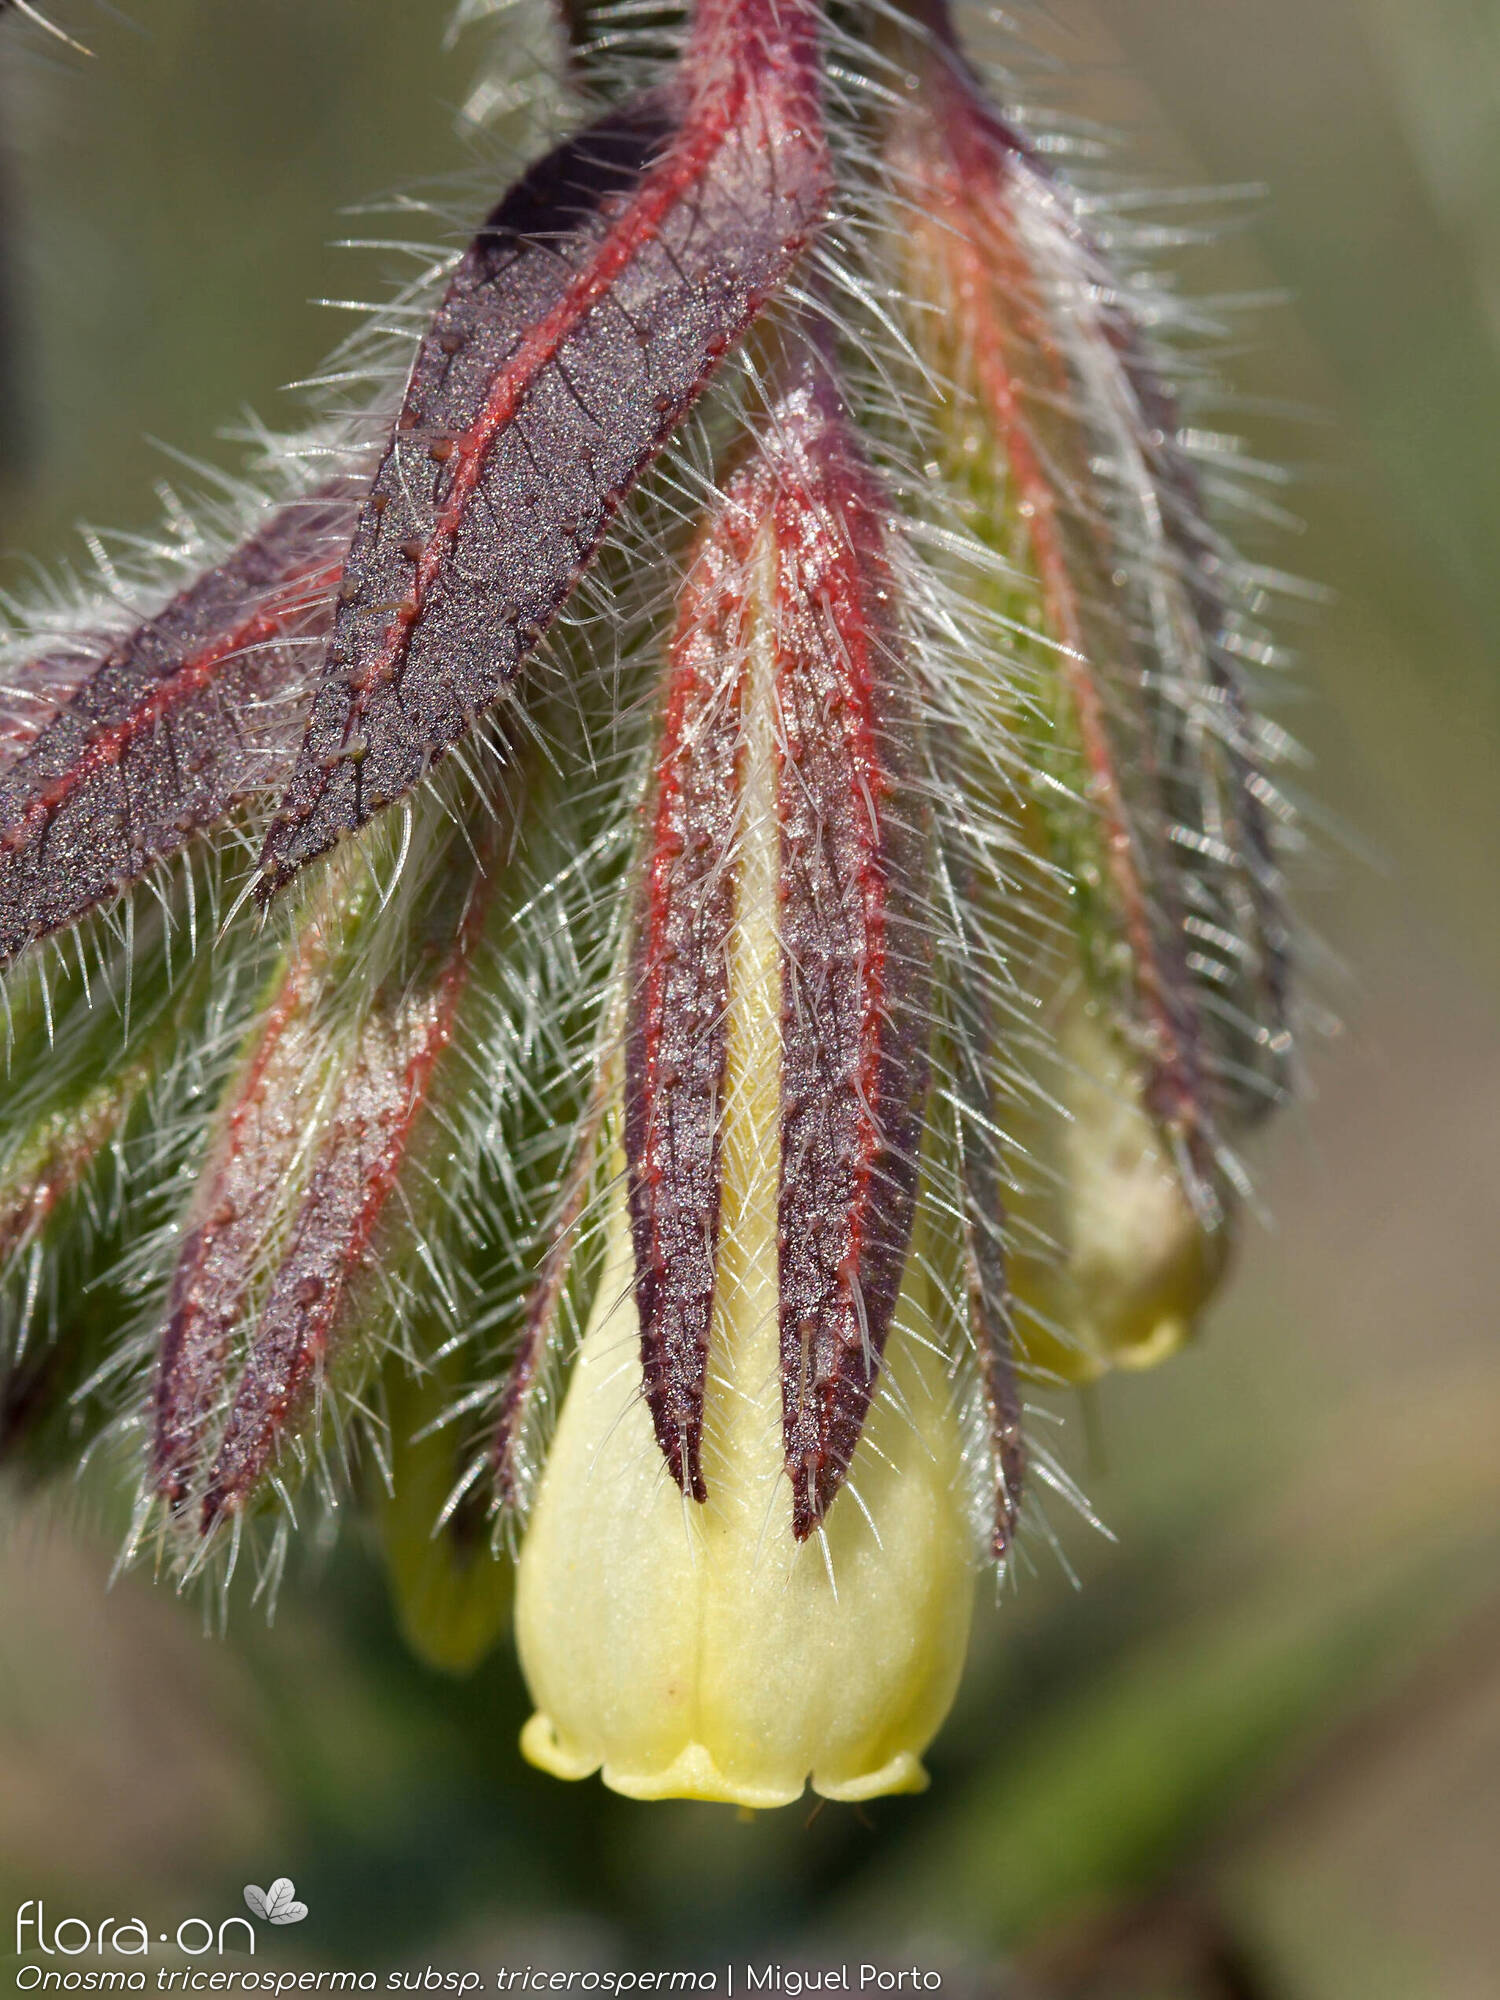 Onosma tricerosperma tricerosperma - Flor (close-up) | Miguel Porto; CC BY-NC 4.0